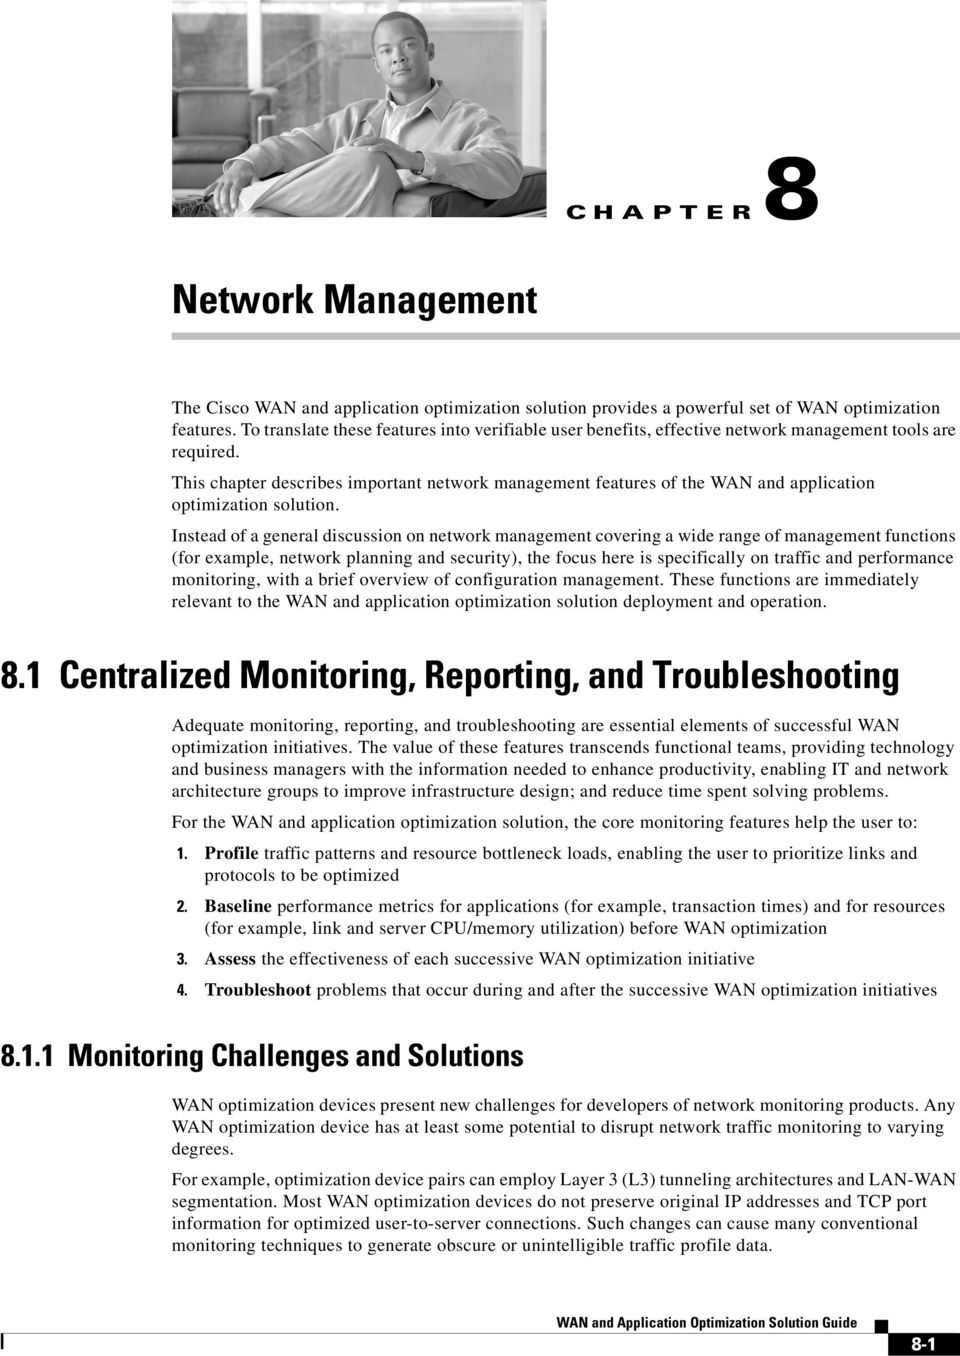 This chapter describes important network management features of the WAN and application optimization solution.